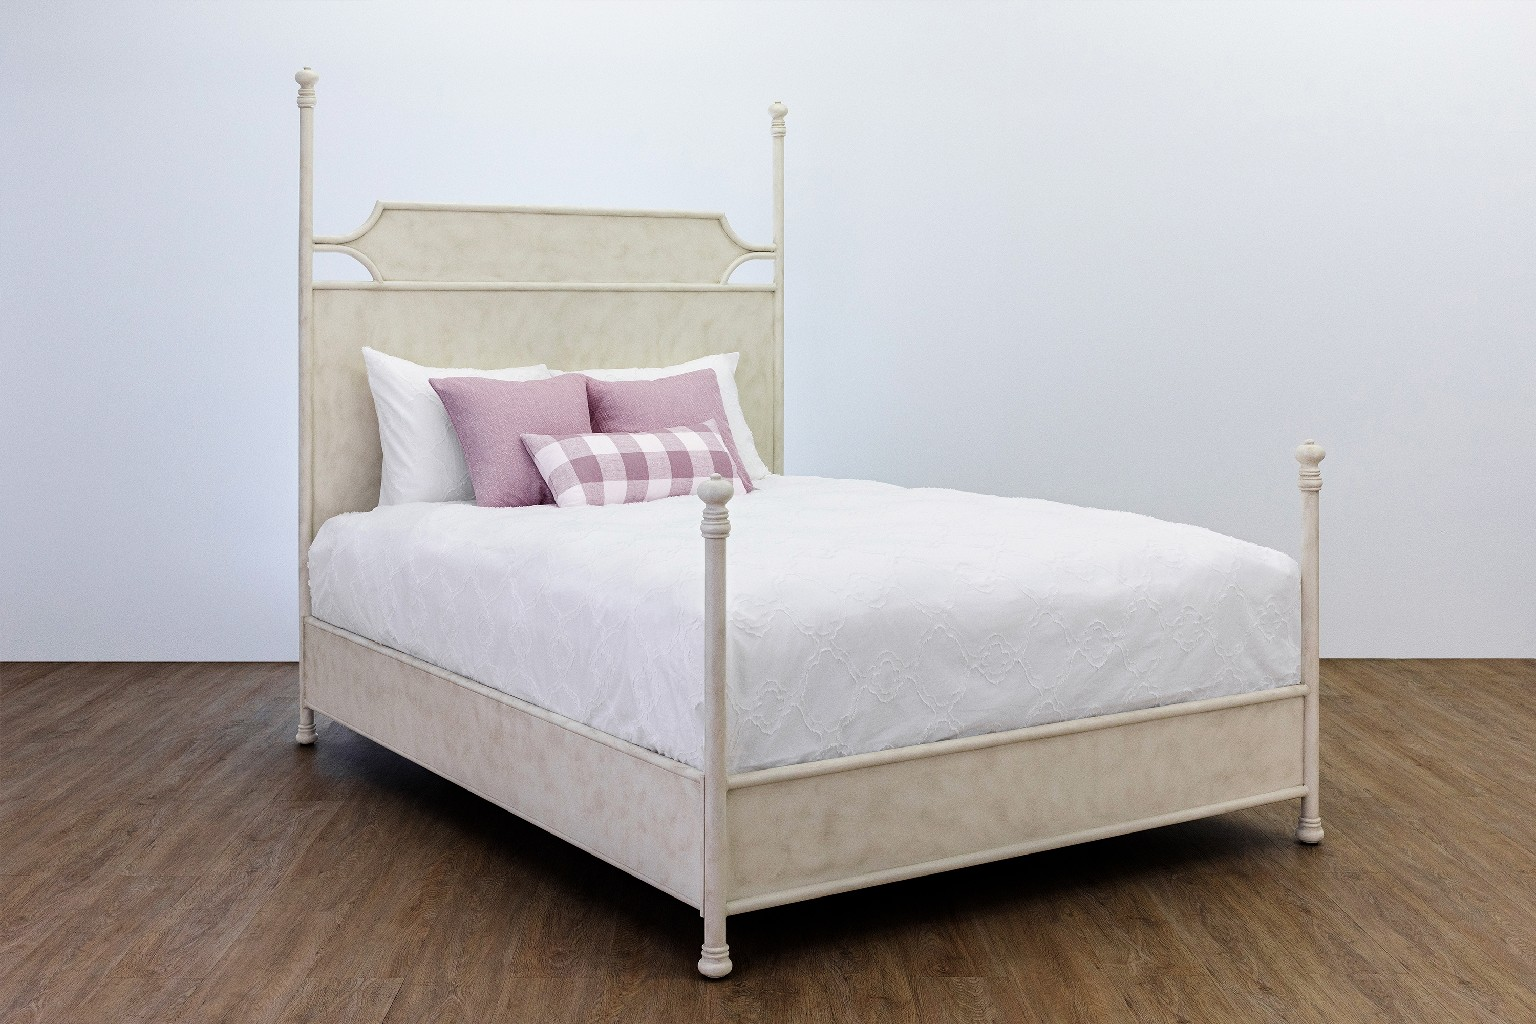 Taylor Gray Home Liana Metal Platform Bed Headboard